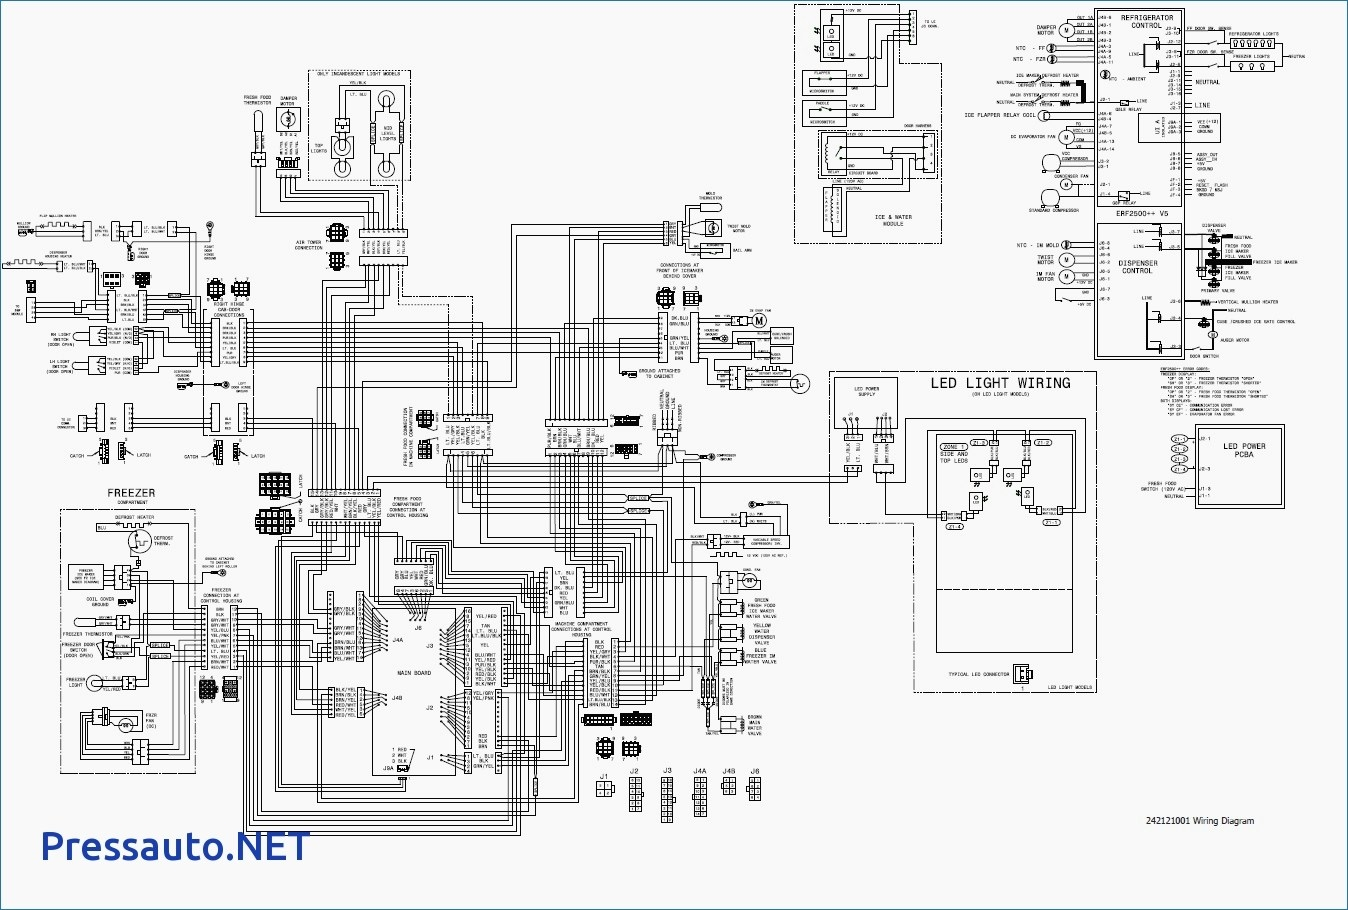 wiring diagram for frigidaire refrigerator